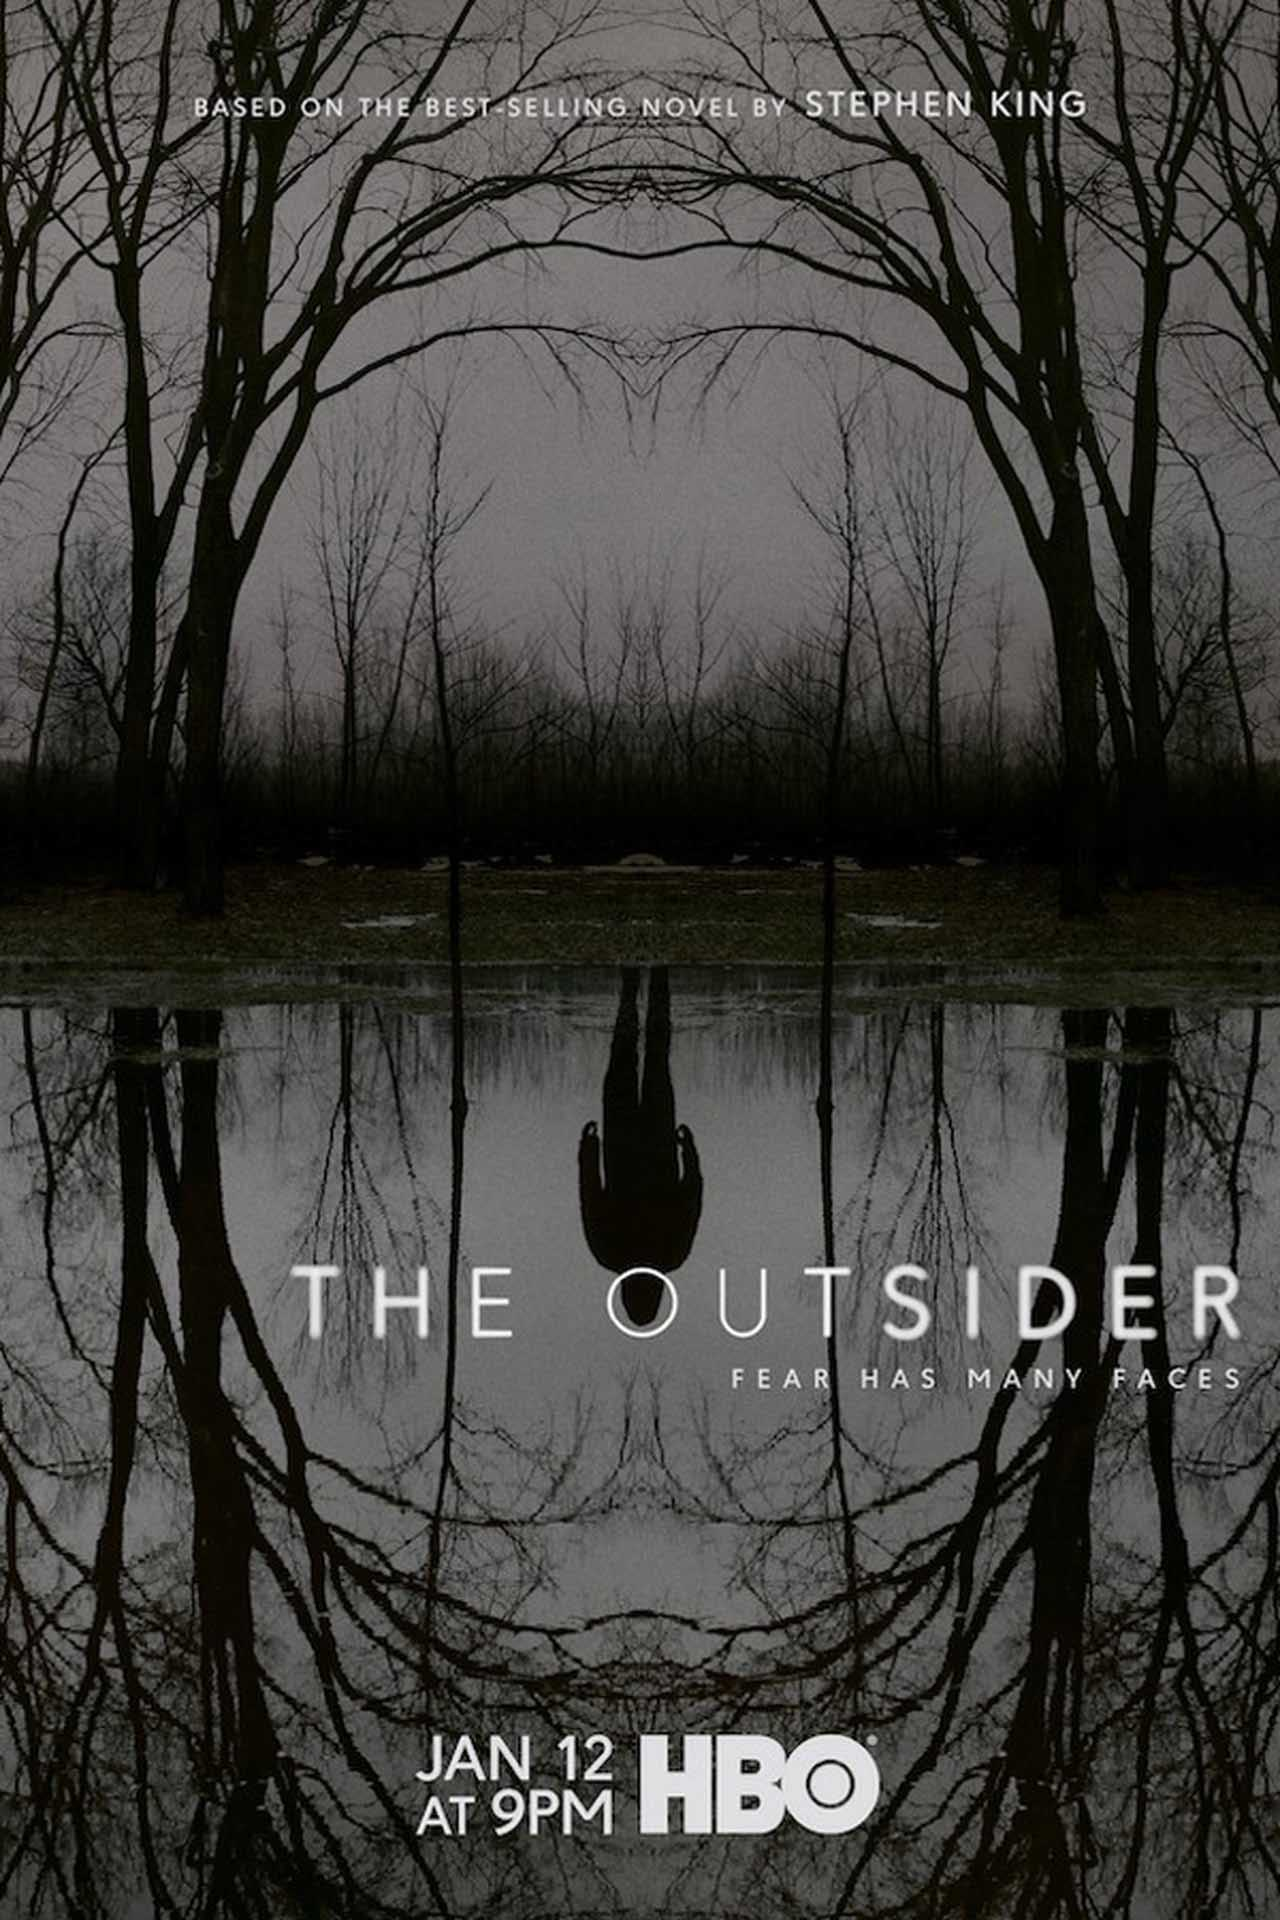 دانلود سریال The Outsider 2020 - بیگانه